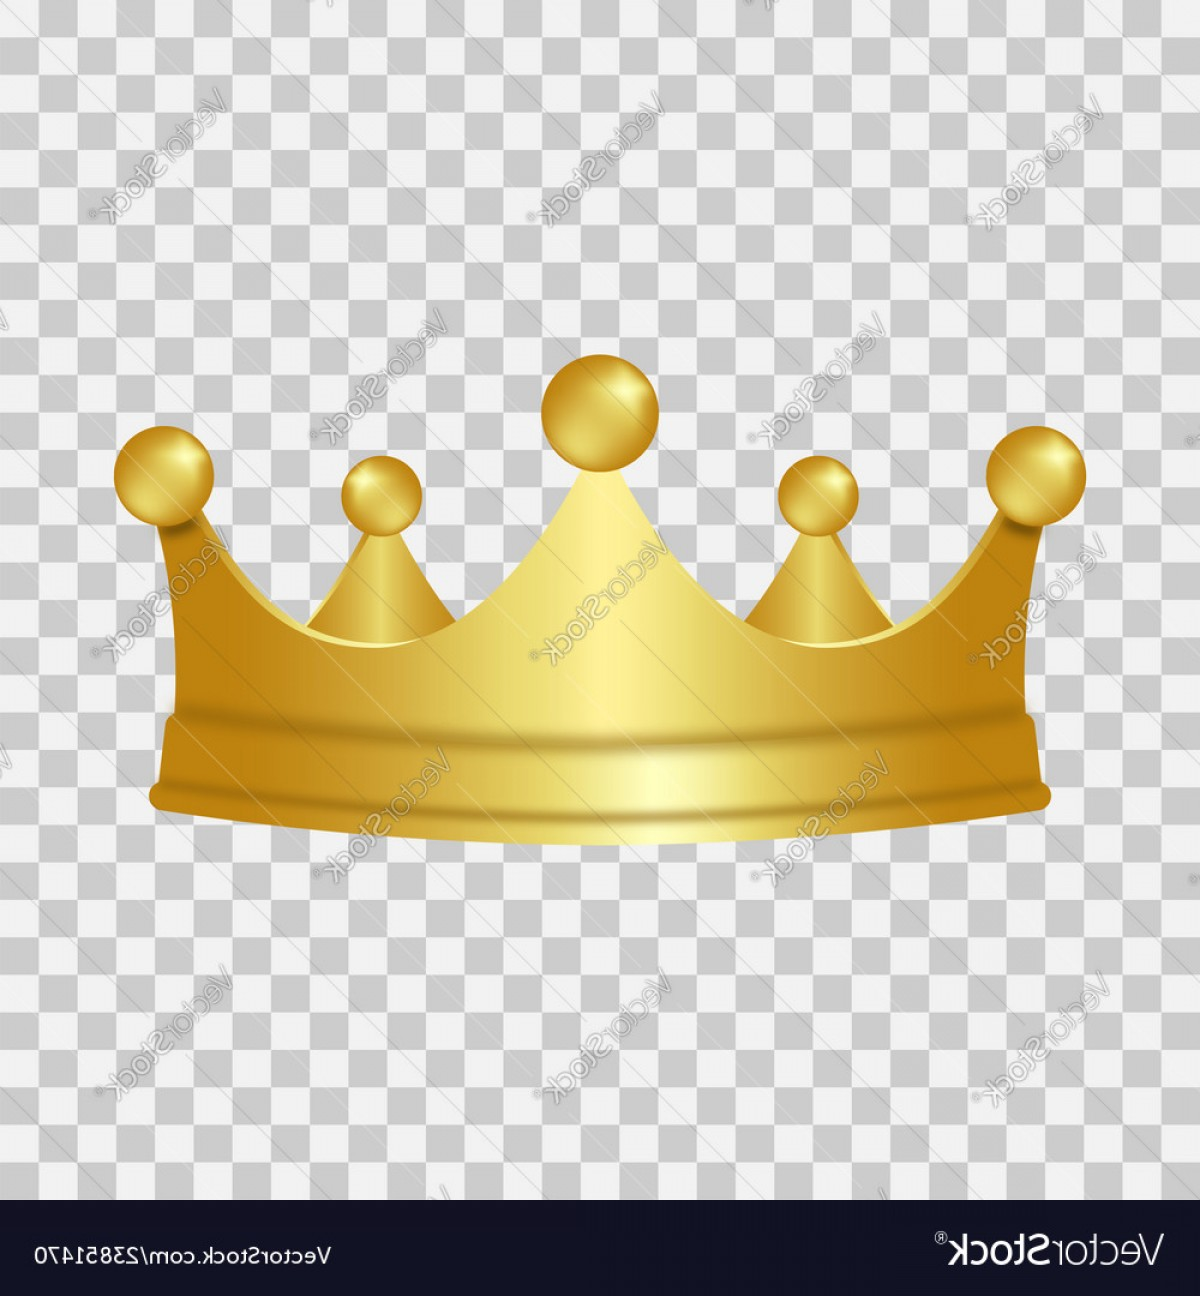 Transparent Queen Crown Vector: Queen Clipart Transparent Scribble Crown Doodles F